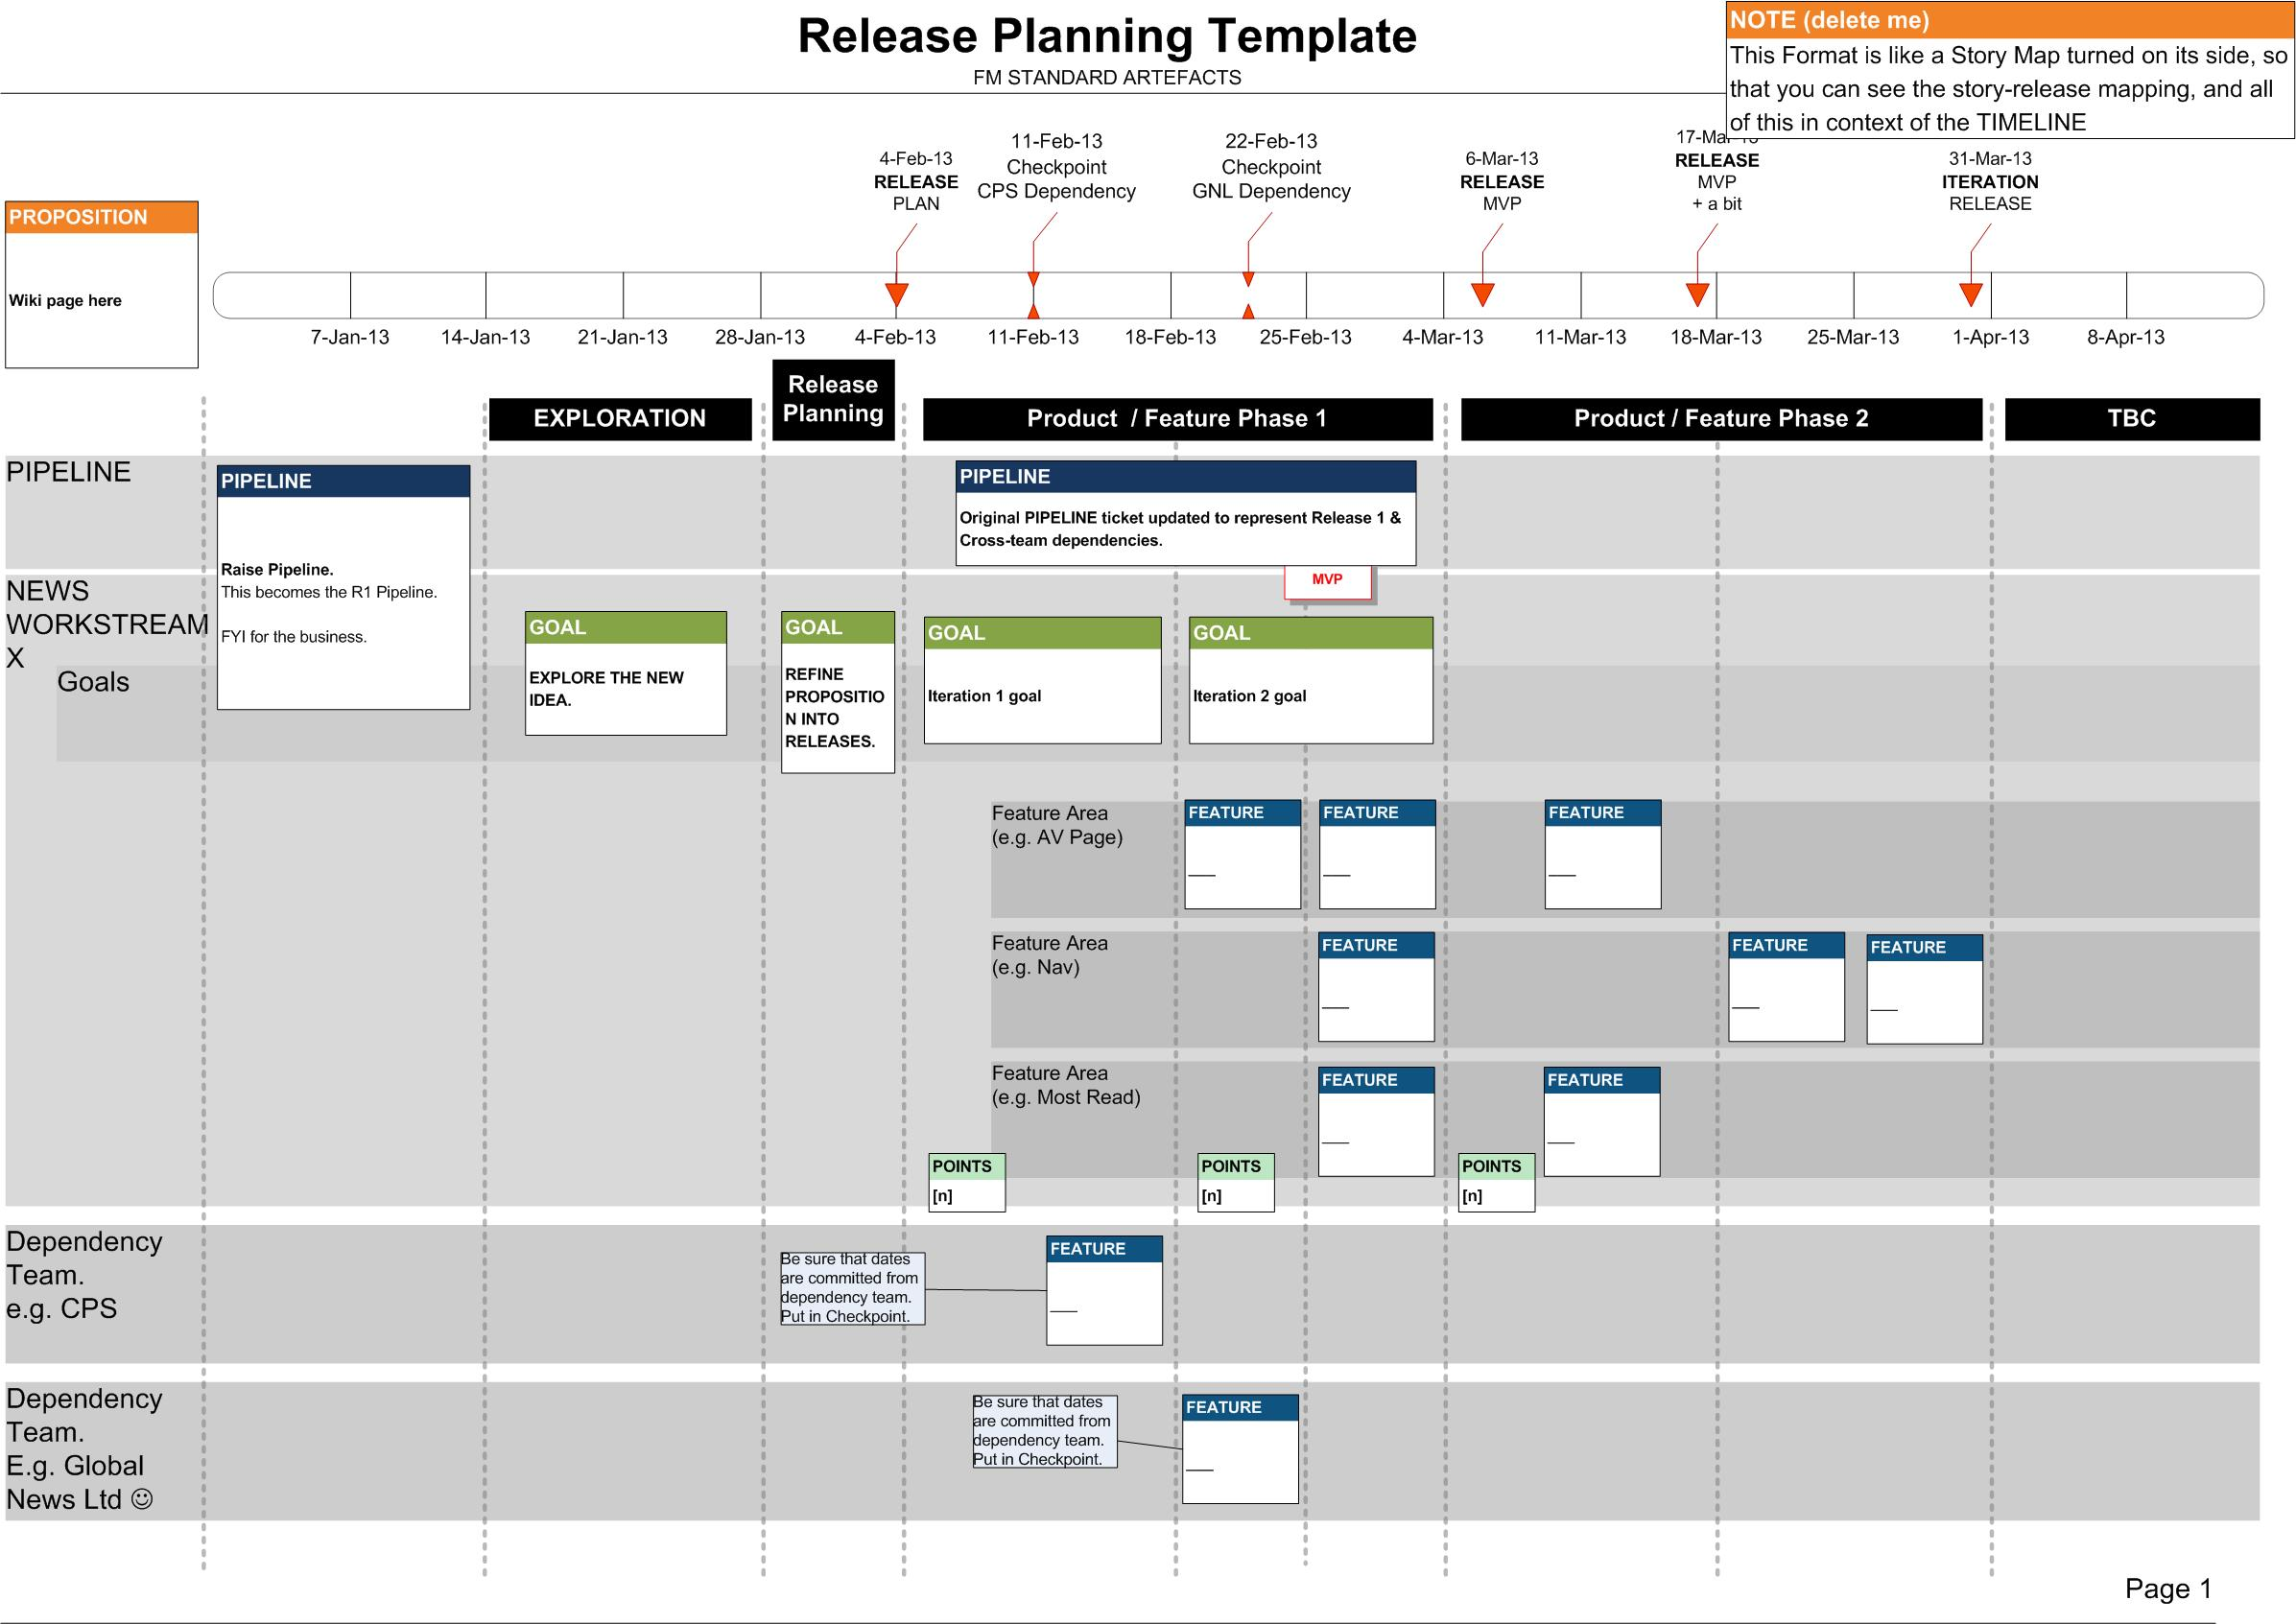 Launching a new BBC News Lean Agile Delivery Process – Release Planning Template